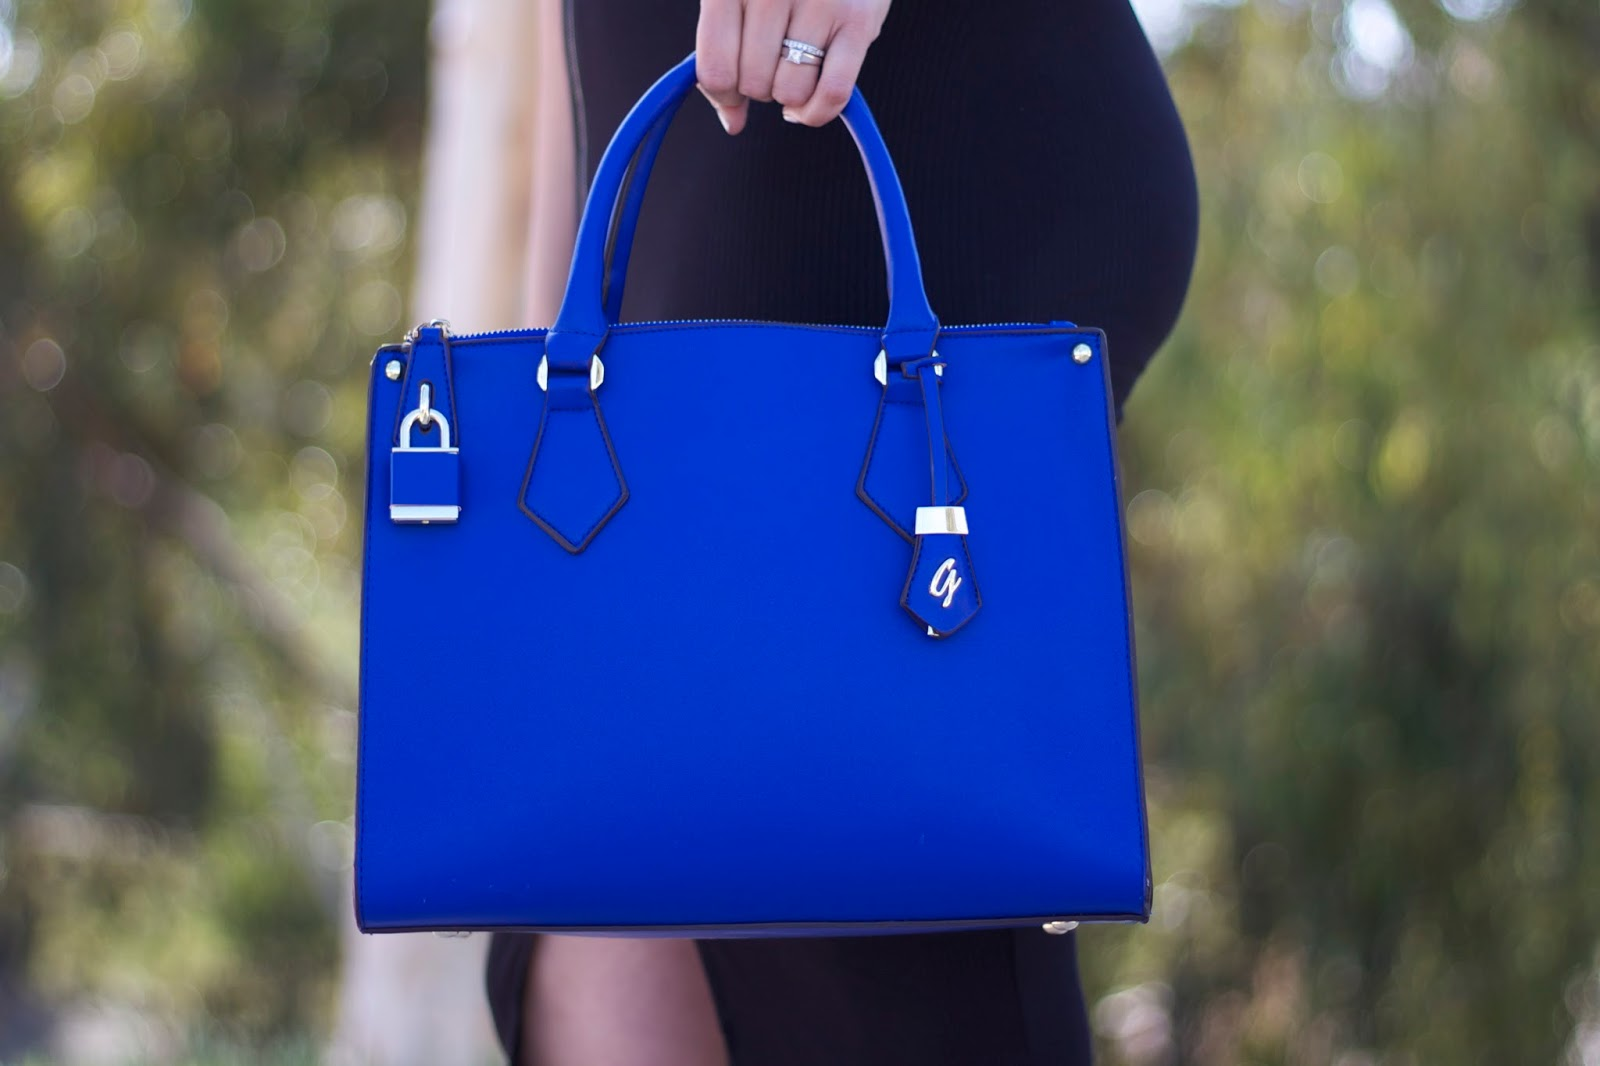 Galian Handbag blogger, blue handbag, blue galian handbag, blue structured bag